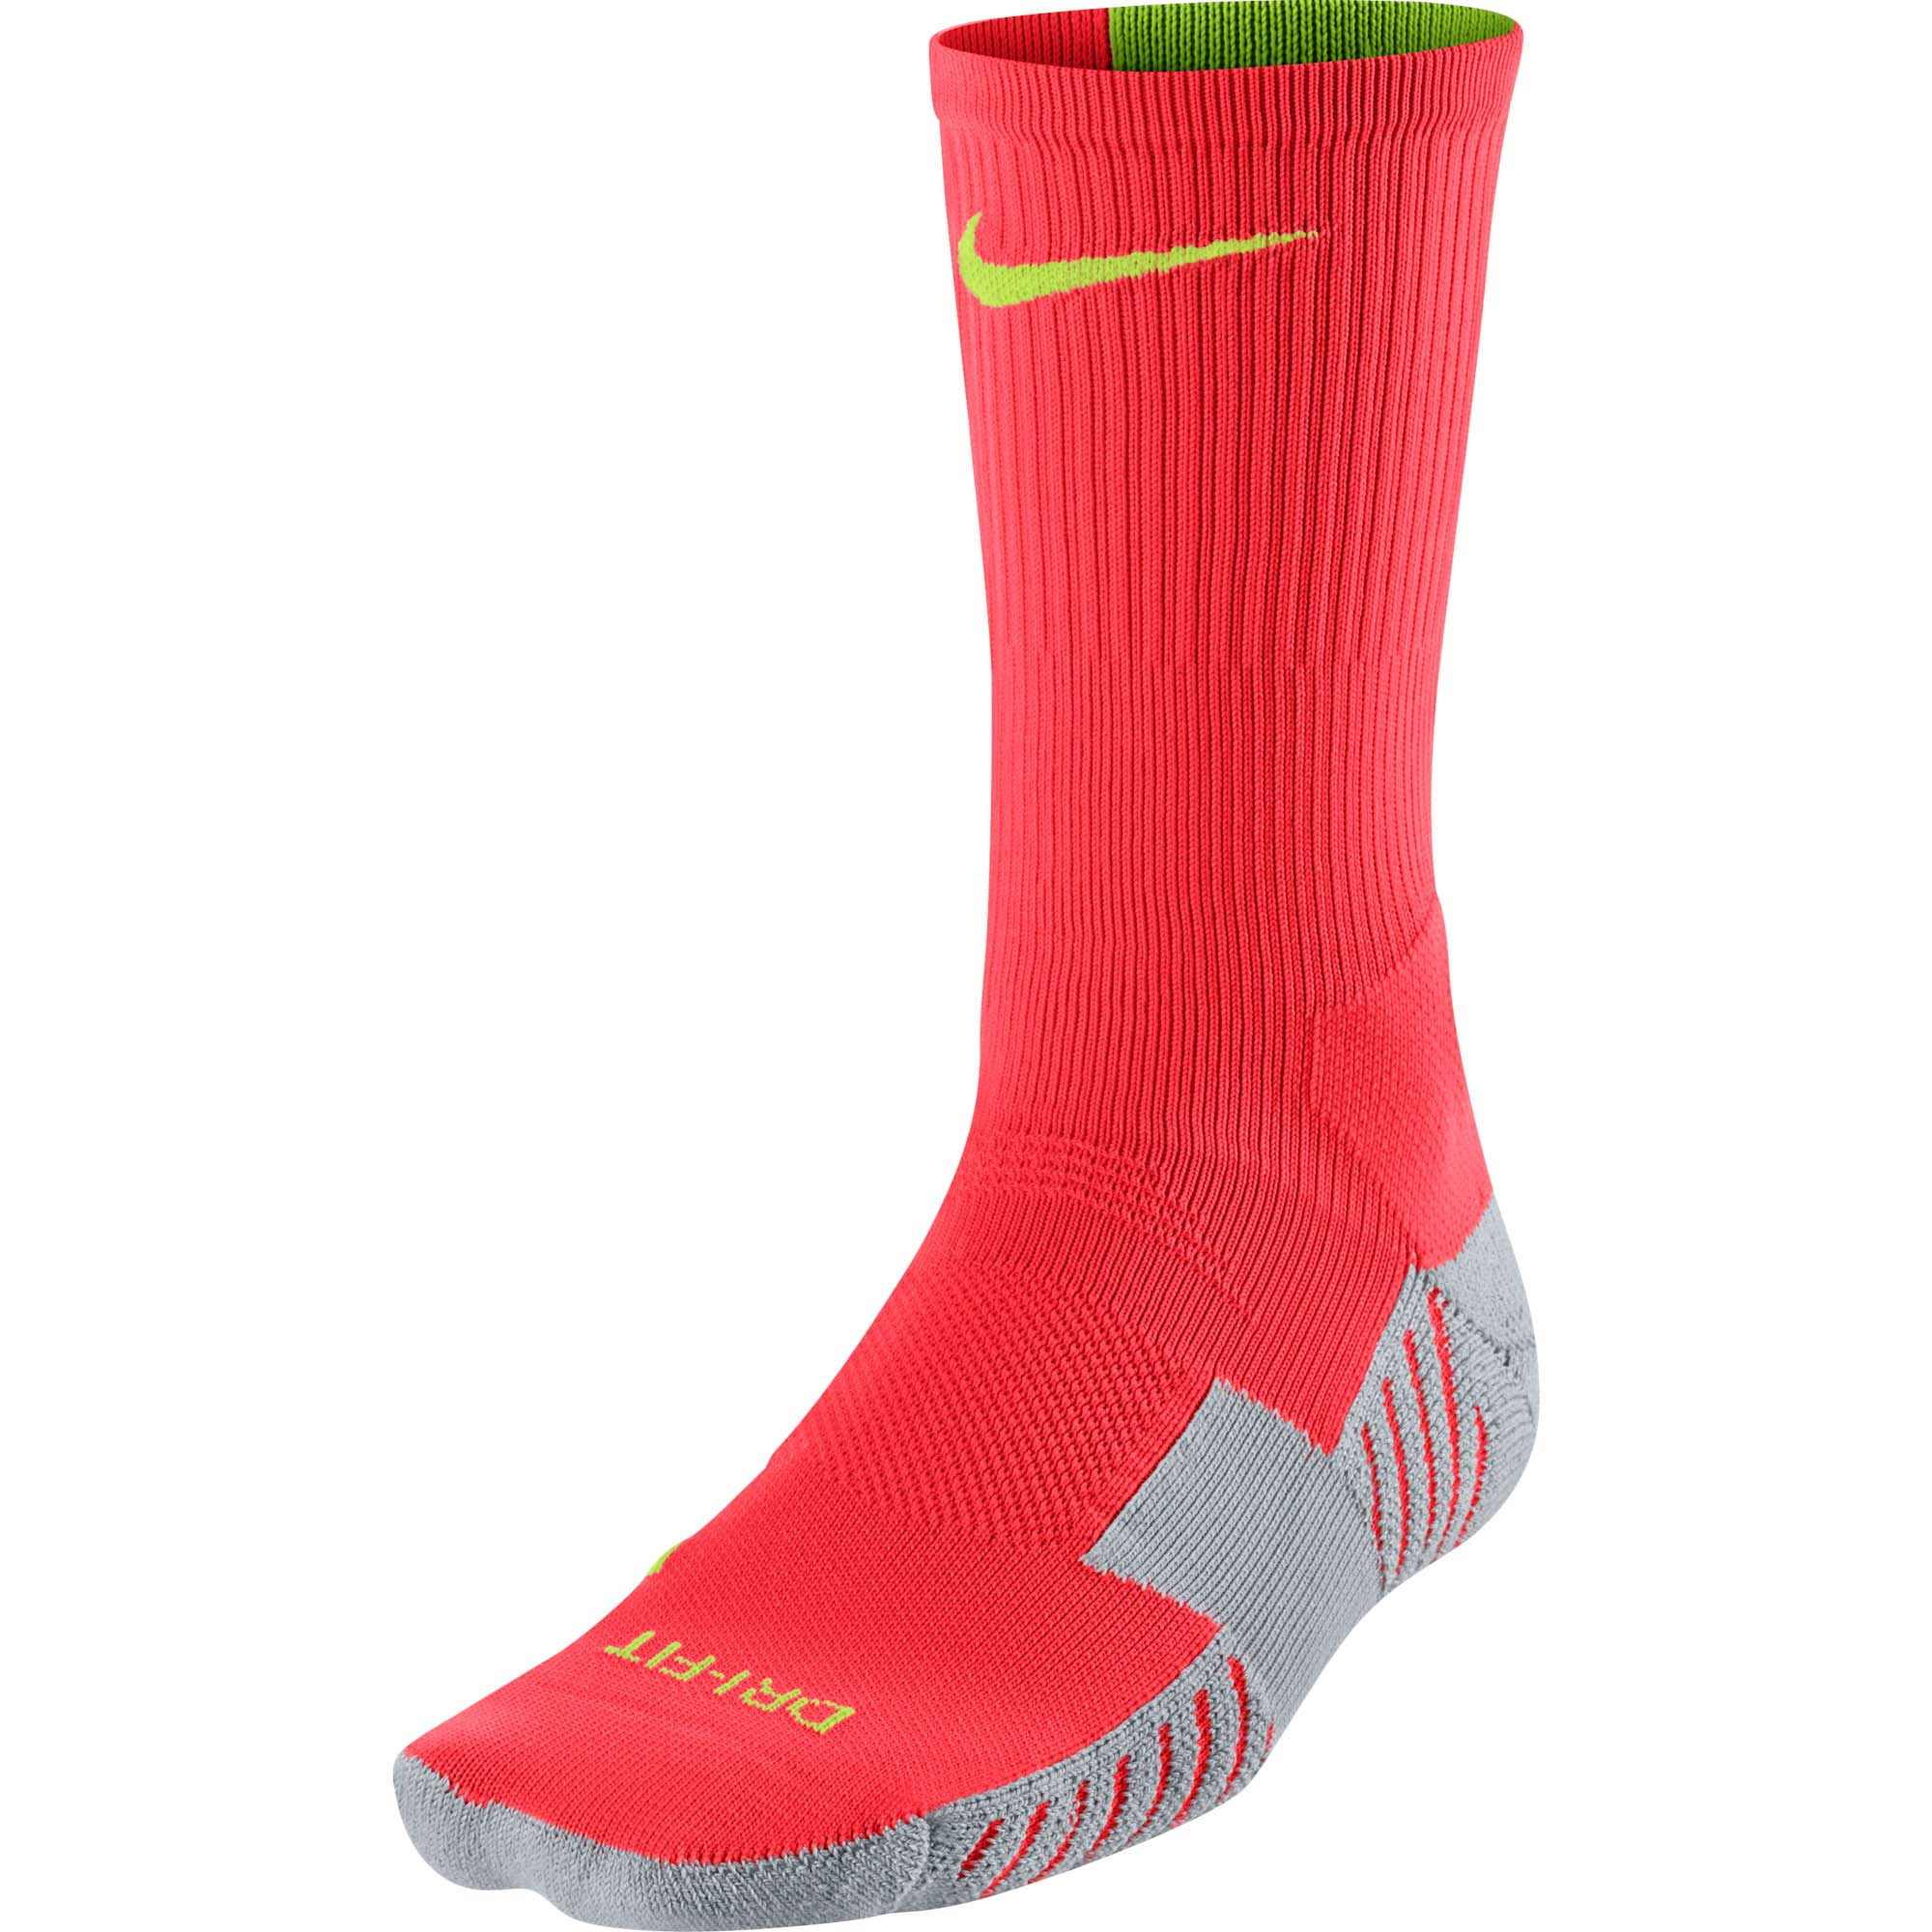 Nike Match Fit Soccer Crew Sock - Red and Grey - SoccerPro